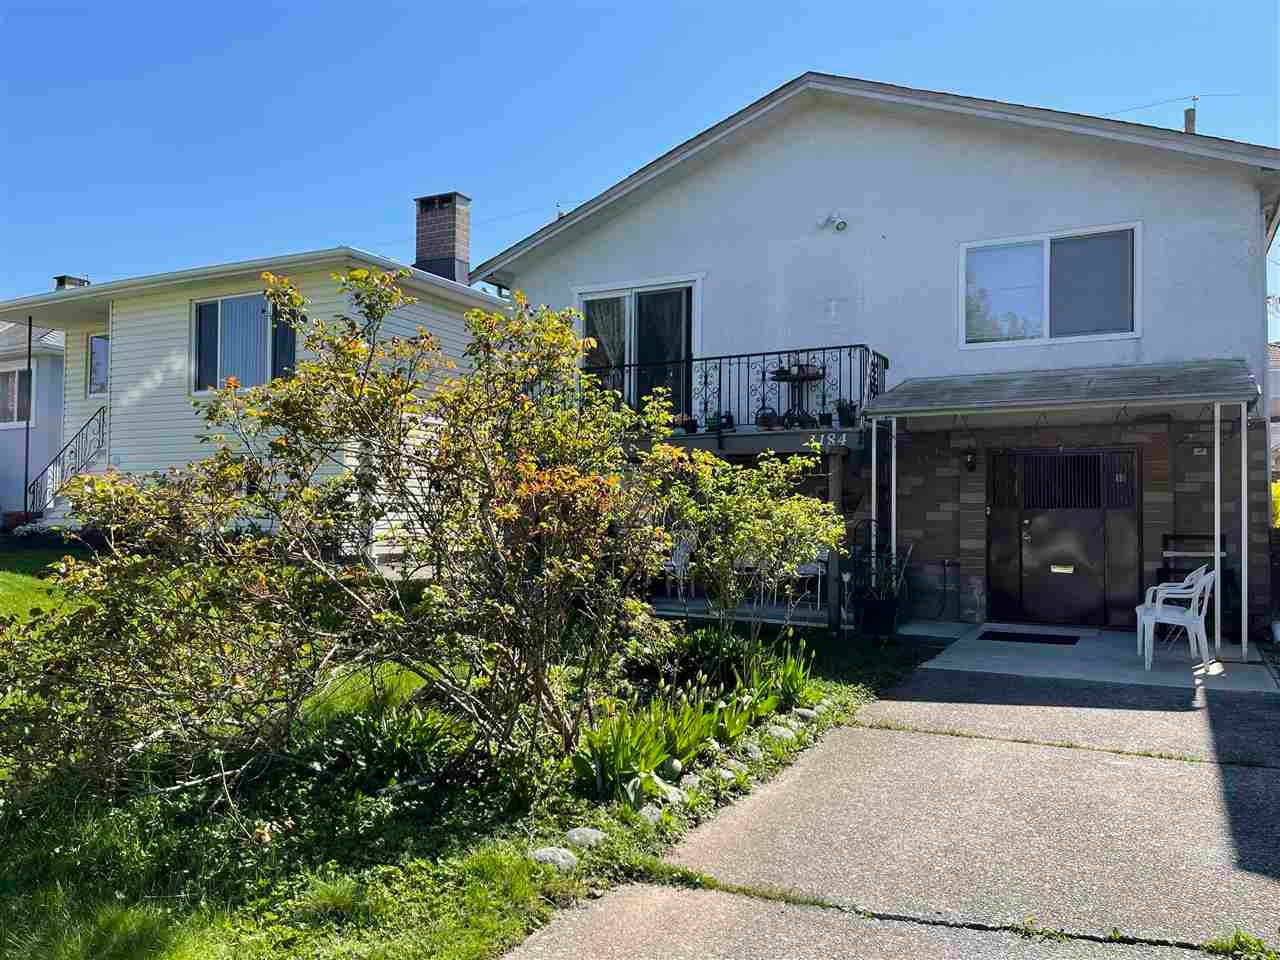 3184 E 17TH AVENUE - Renfrew Heights House/Single Family for sale, 6 Bedrooms (R2582875) - #1